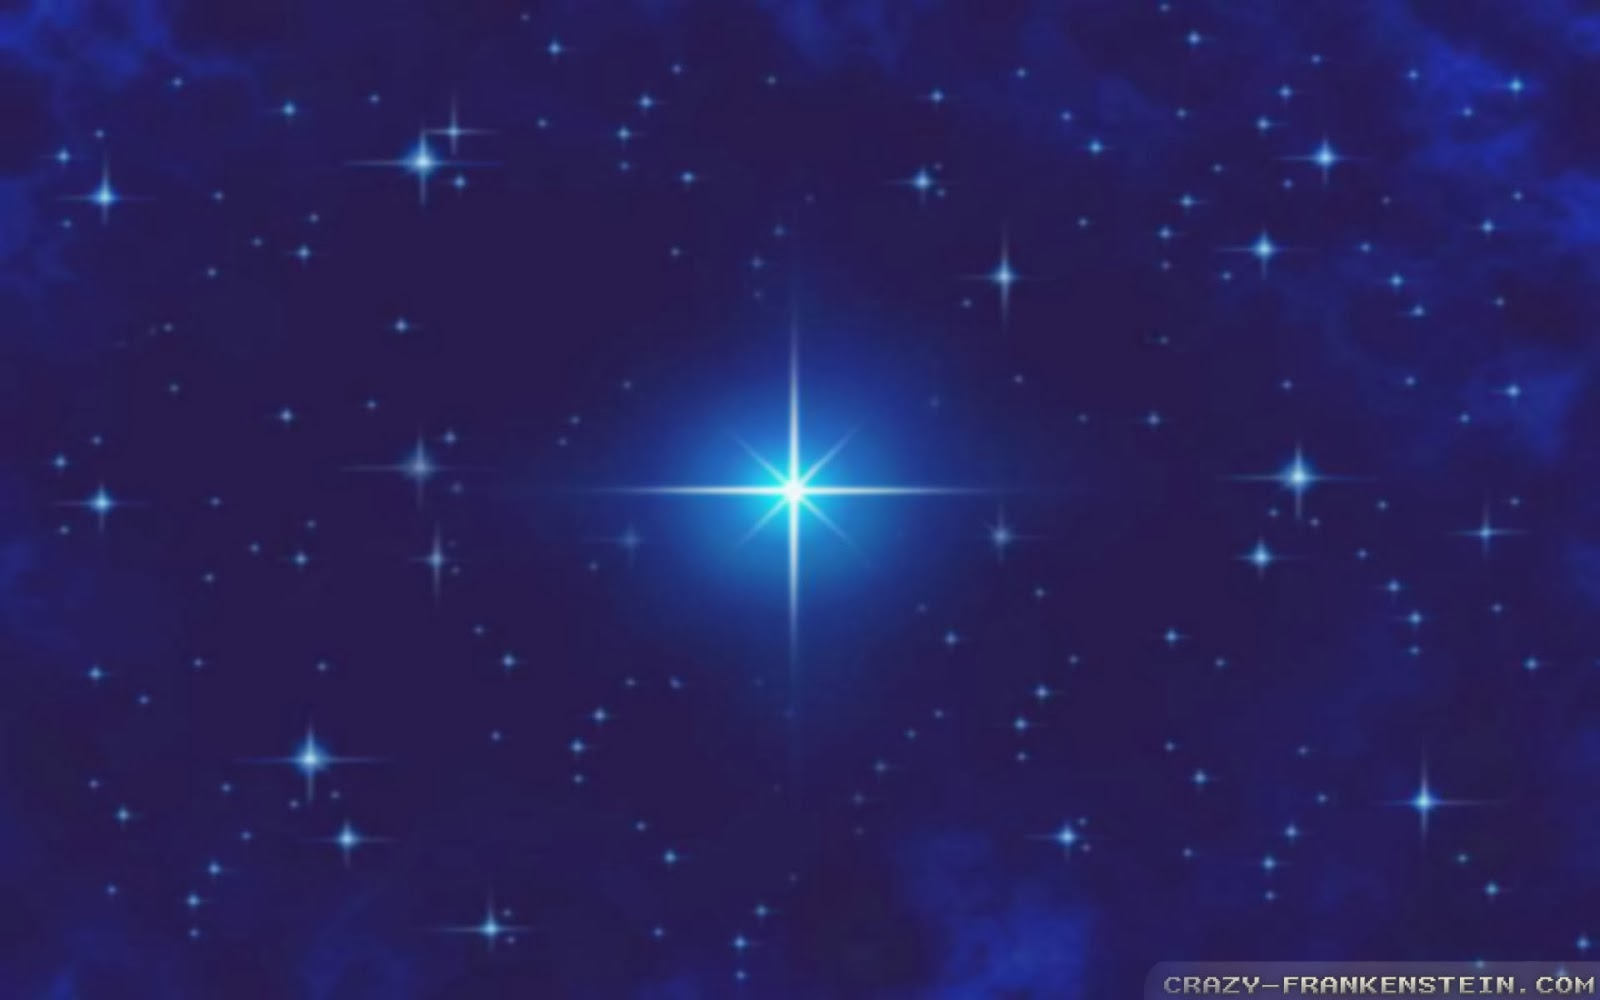 suzette says christmas star a poem